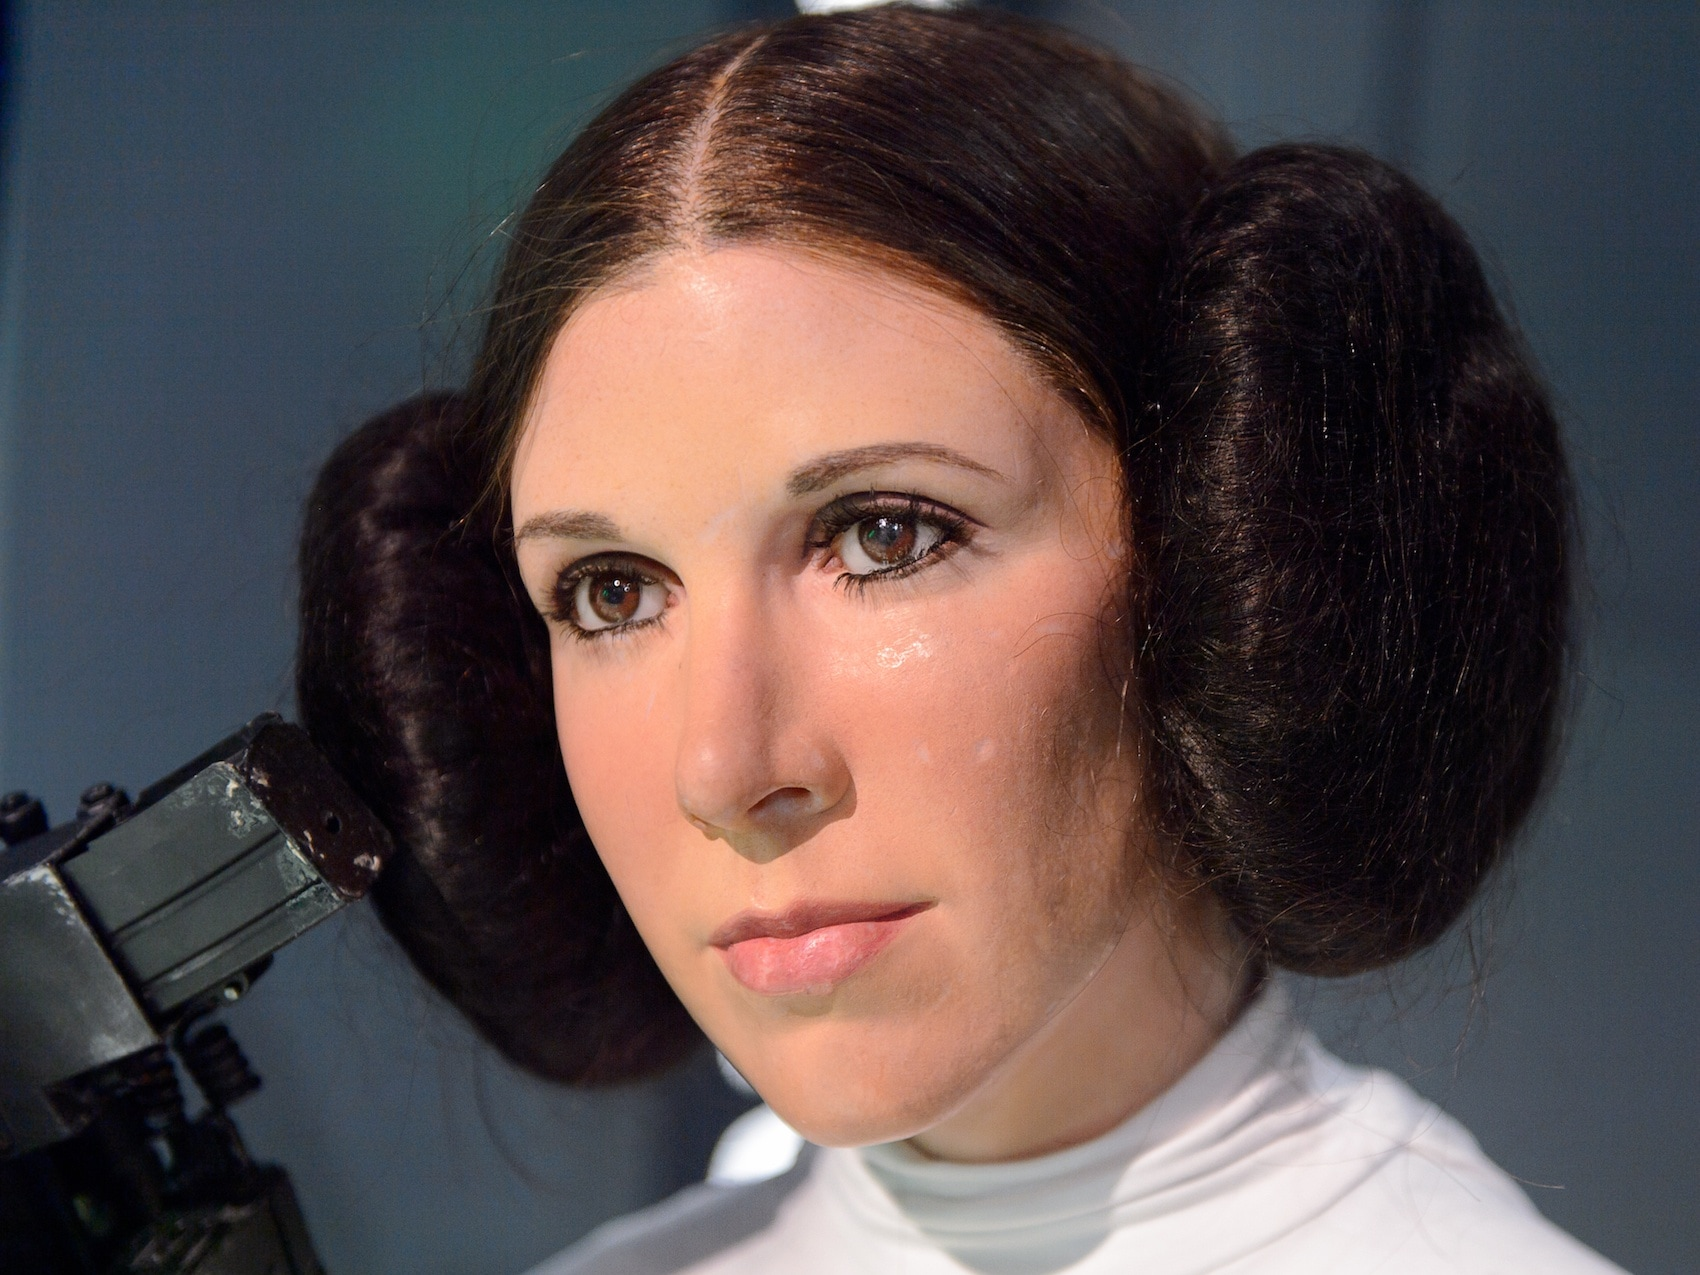 Leia Organa Carrie Fisher model rambut space bun besar